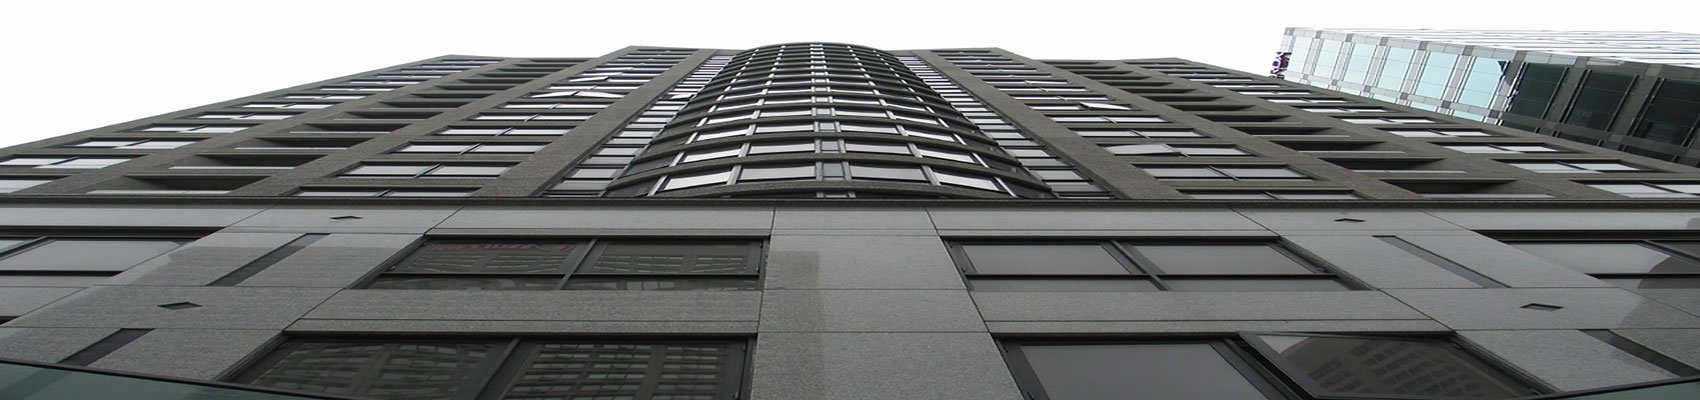 Looking up at a condominium building